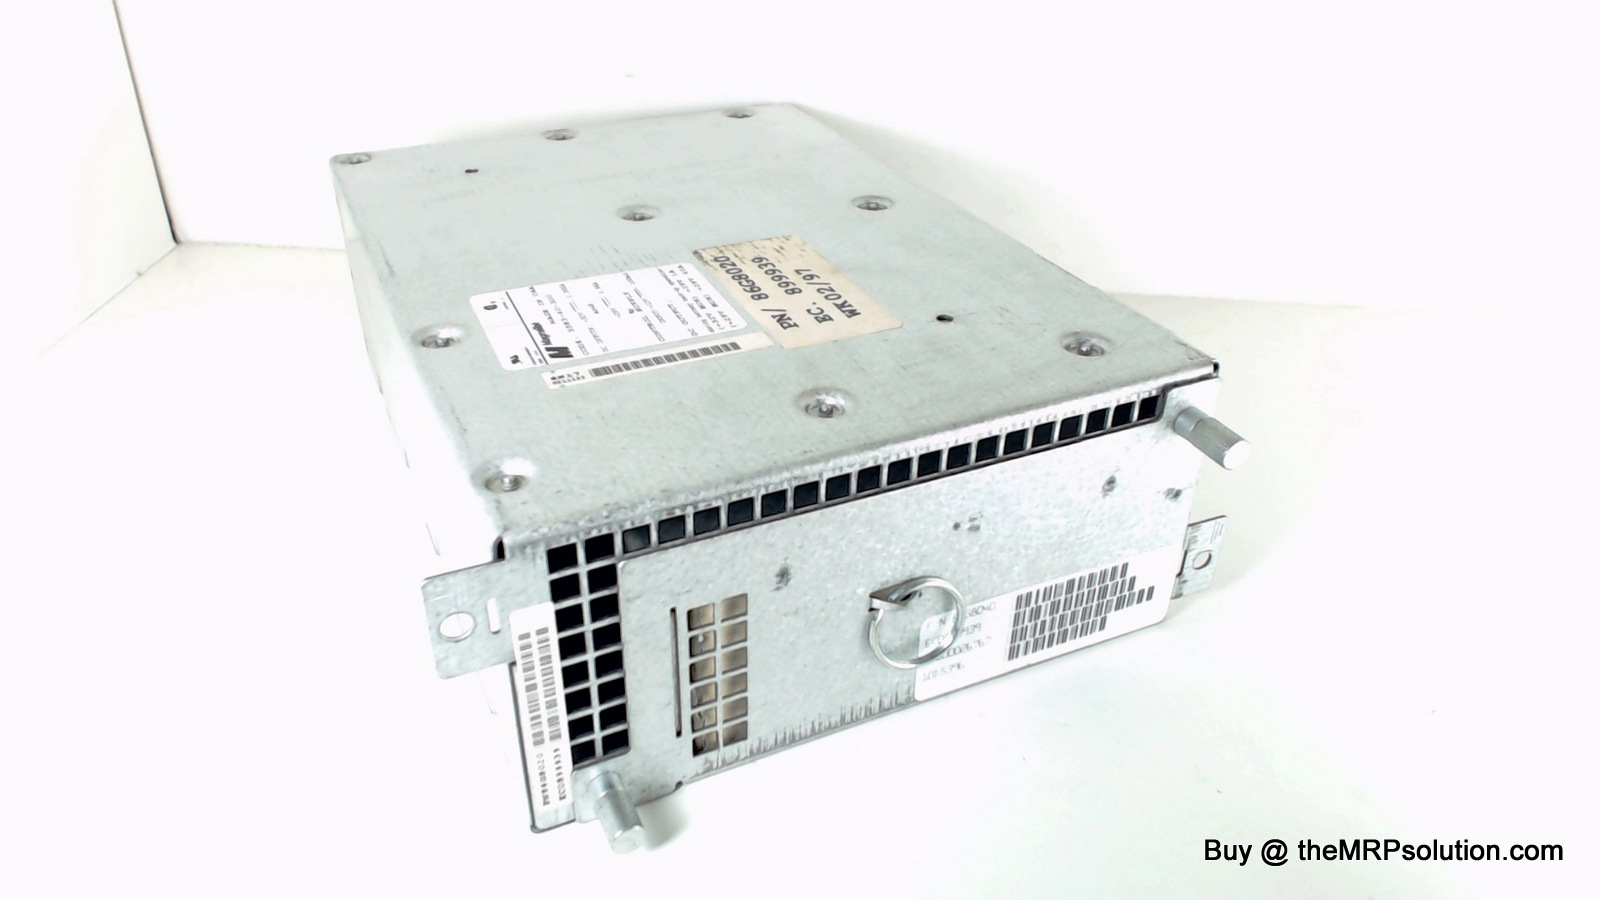 IBM 86G8020 BATTERY POWER UNIT CHARGER Refurbished